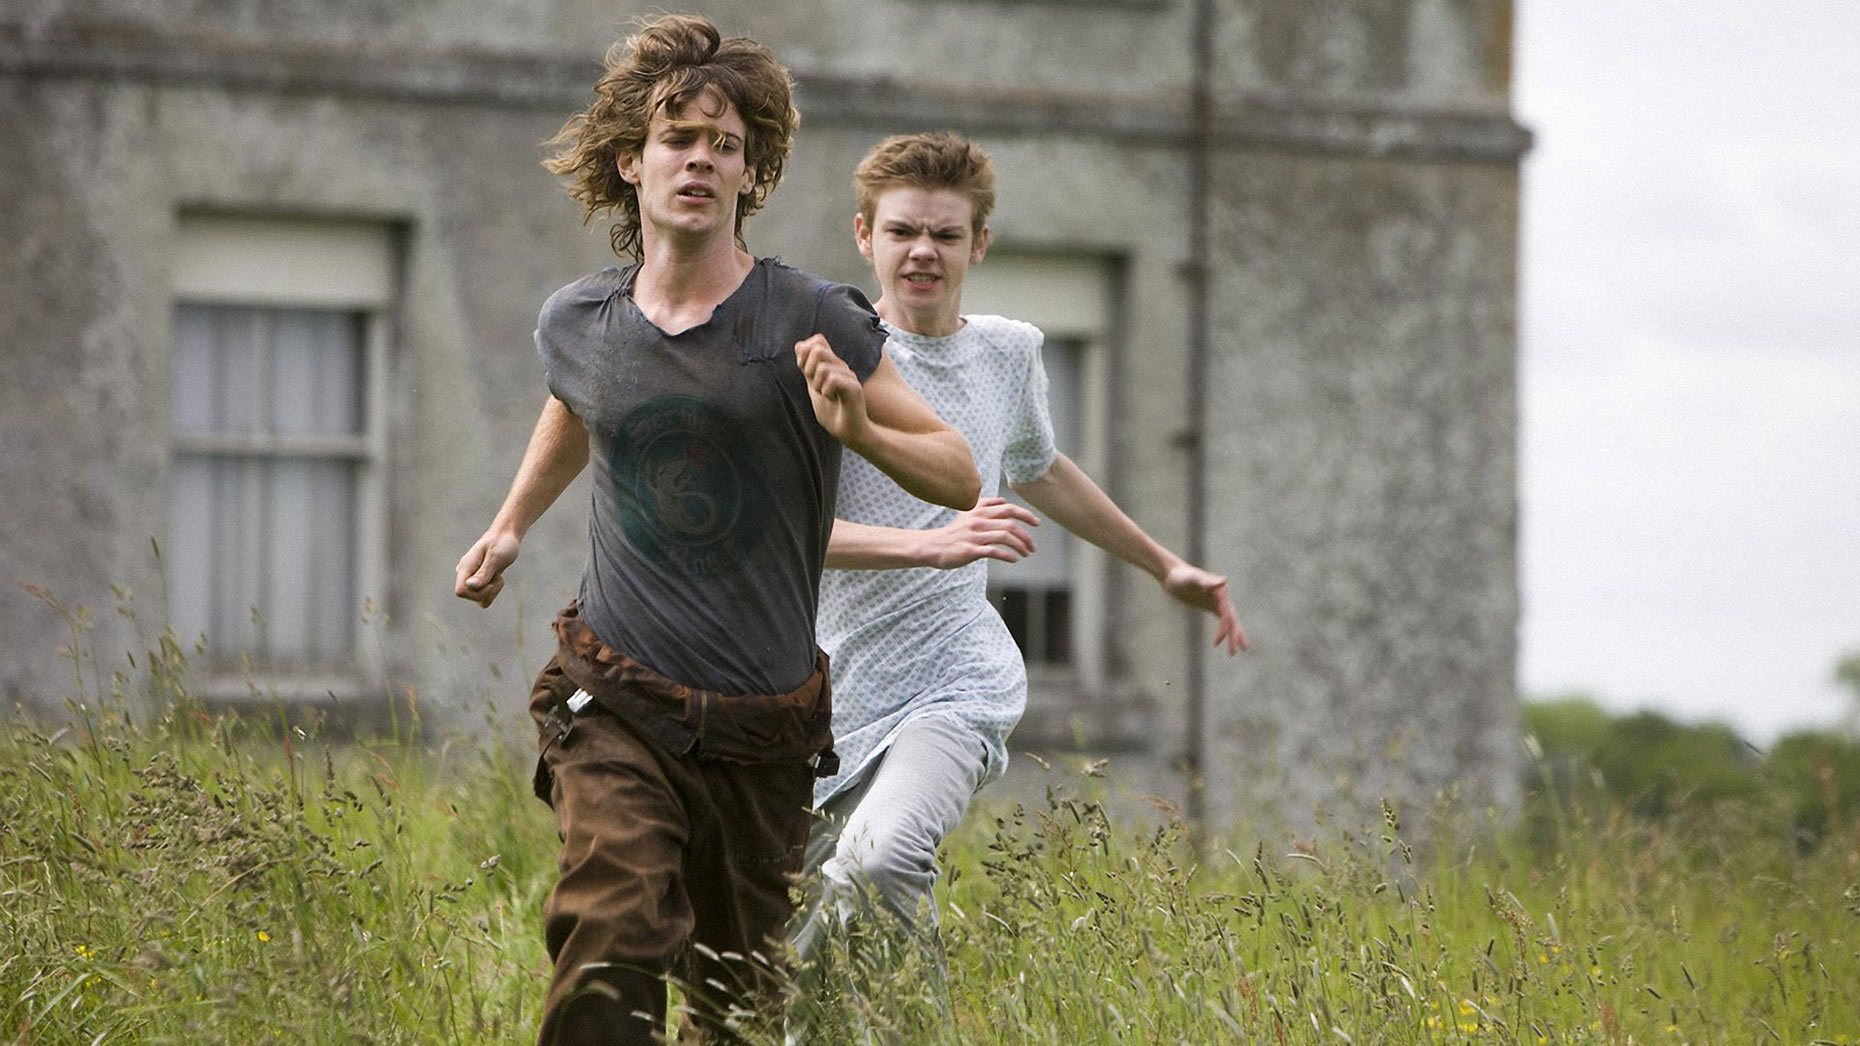 HIDEAWAYS Harry Treadaway and Thomas Brodie-Sangster